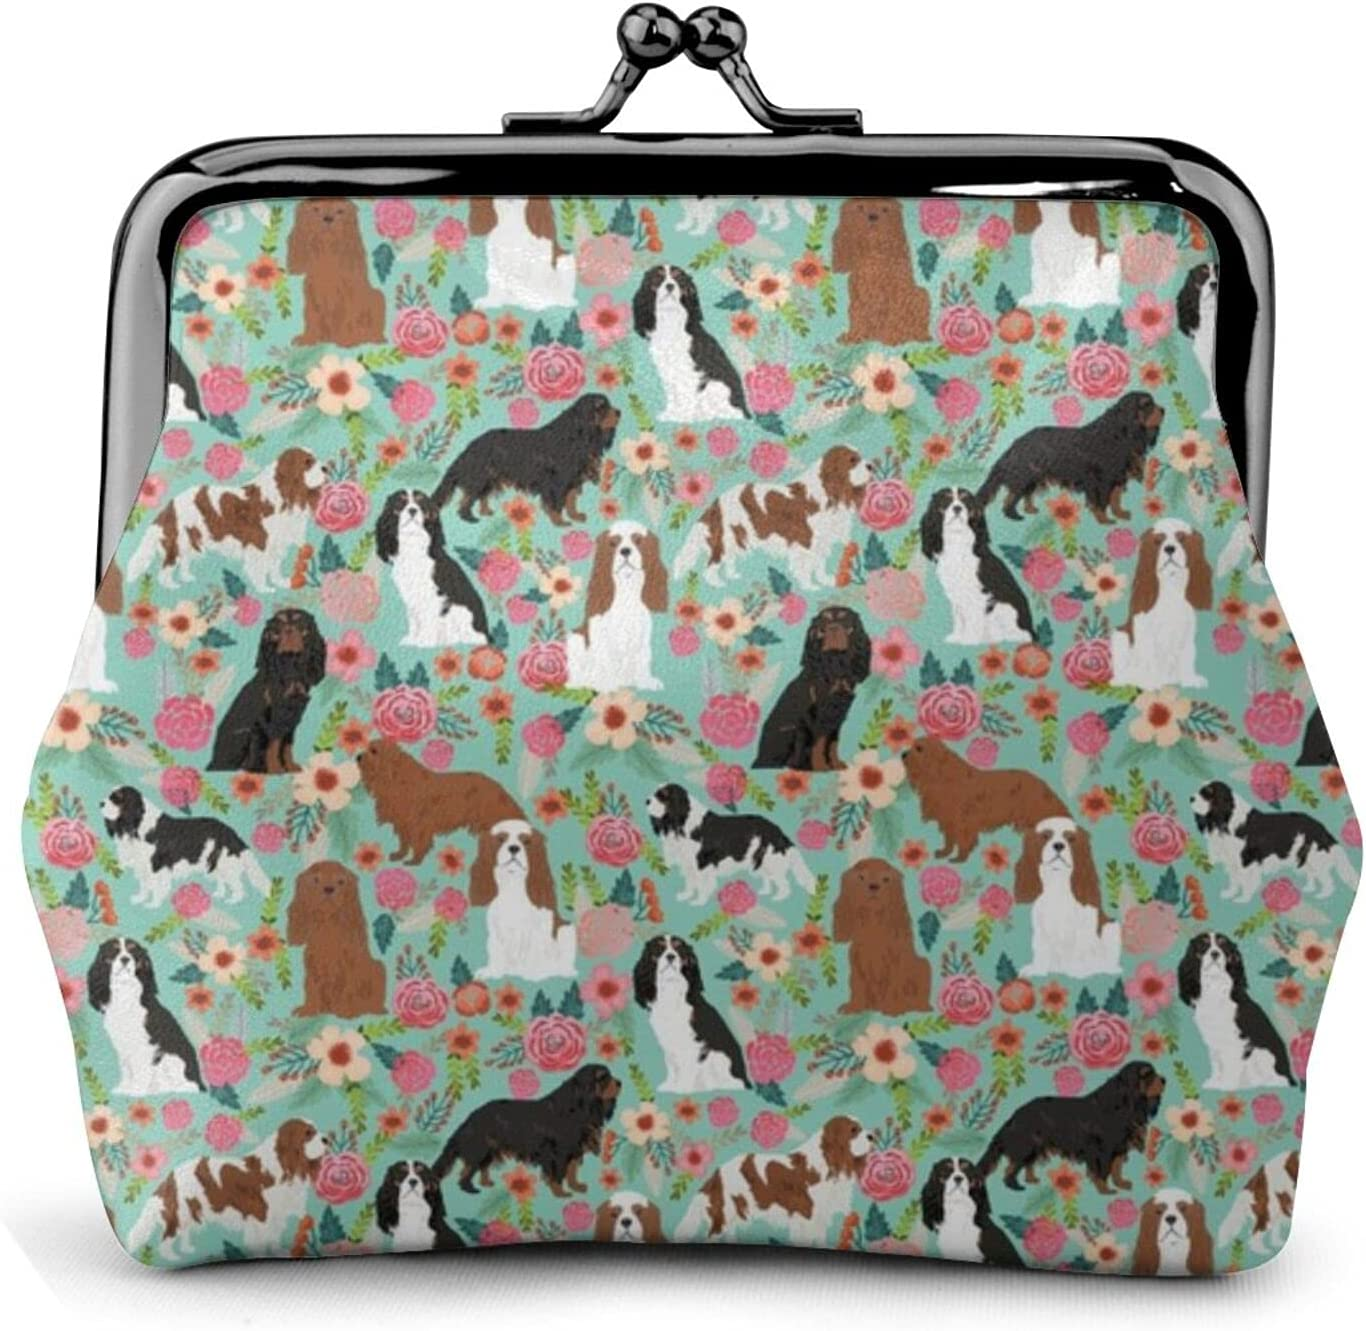 Cavalier King Charles 1448 Coin Purse Retro Money Pouch with Kiss-lock Buckle Small Wallet for Women and Girls